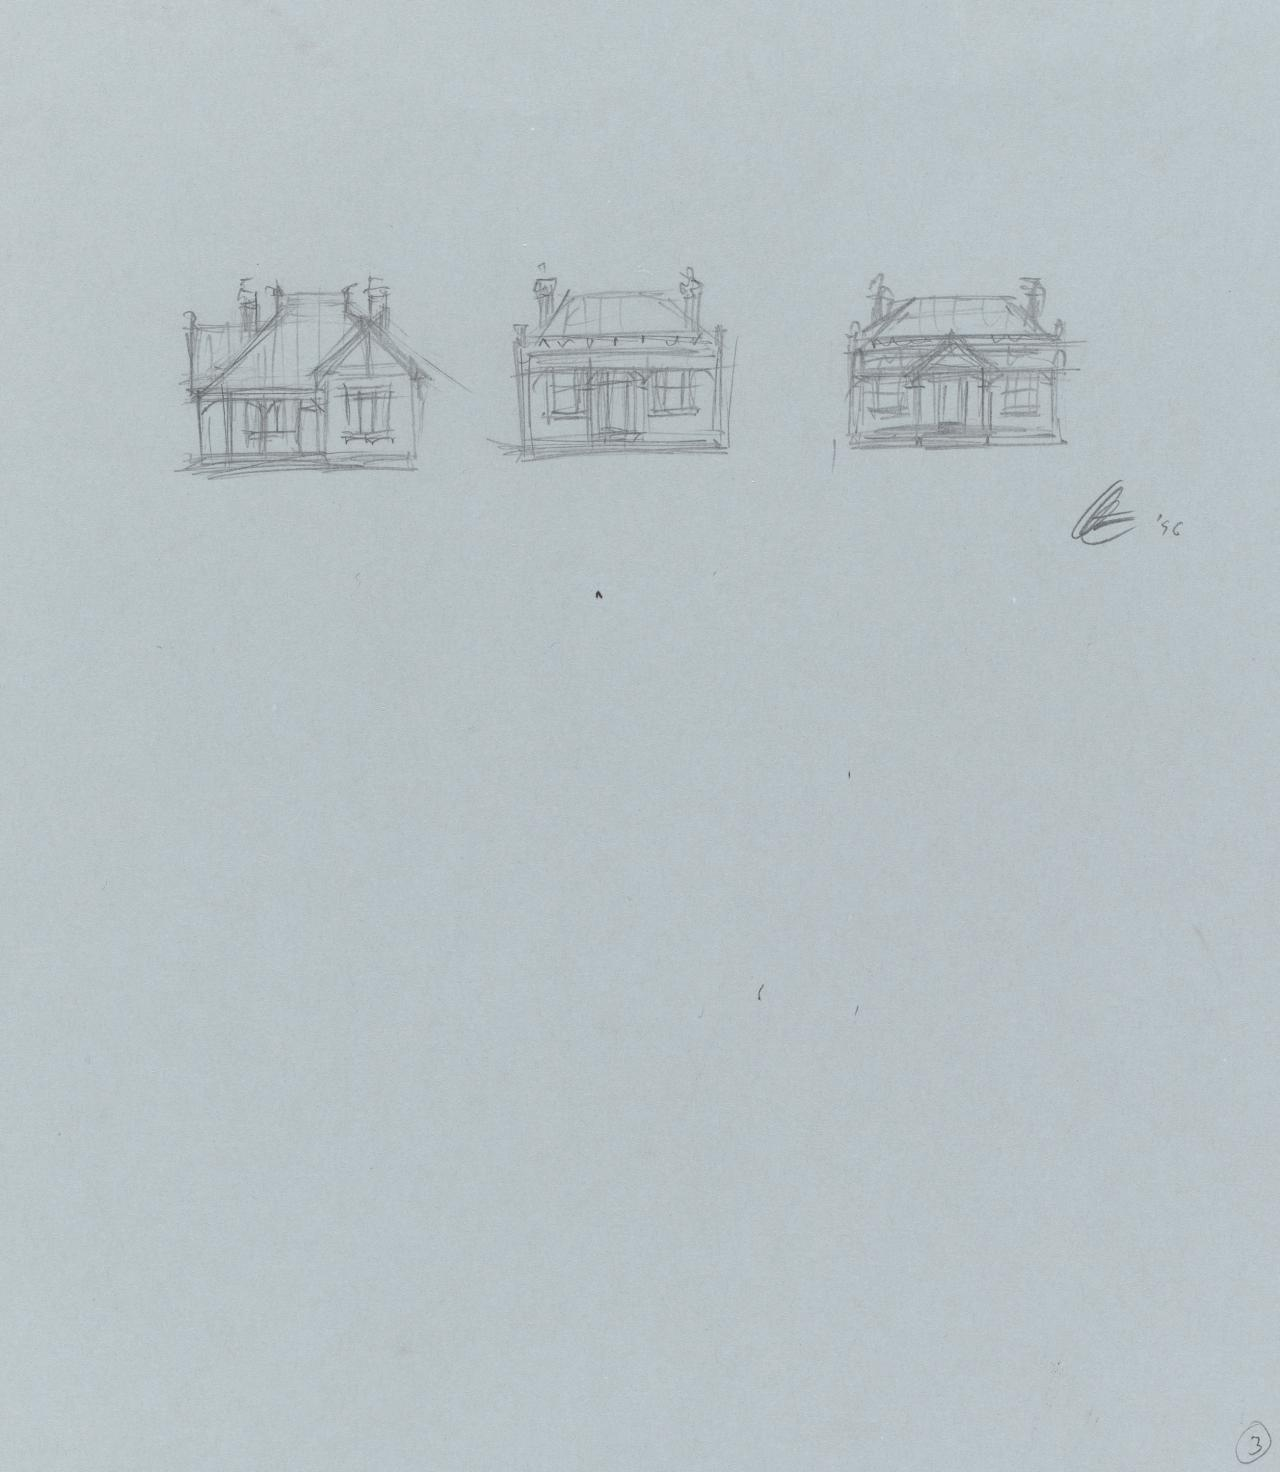 Preparatory drawing for Soliloquy number 3 (Cottages)